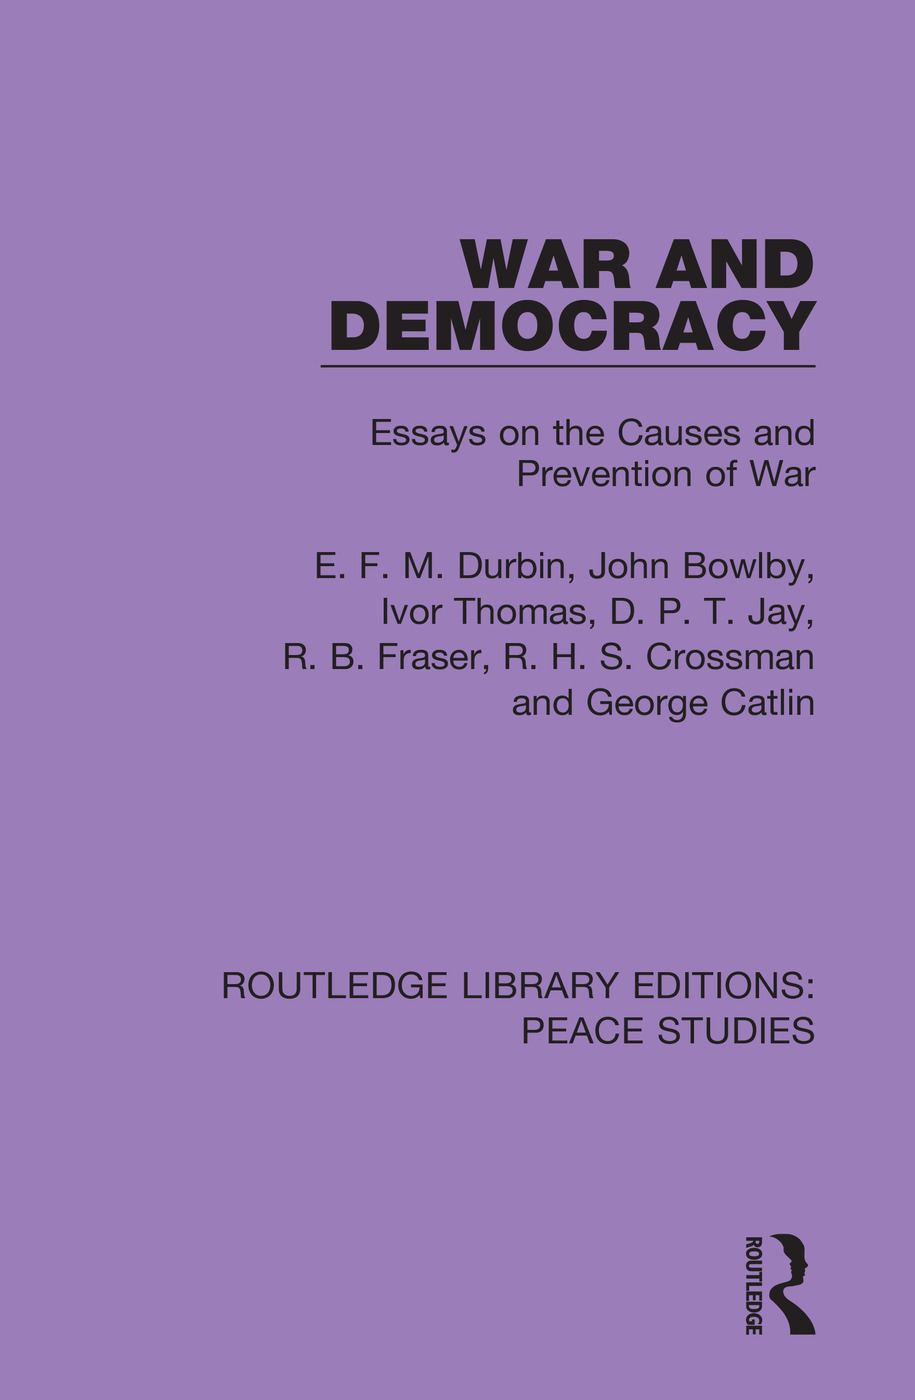 War and Democracy: Essays on the Causes and Prevention of War book cover